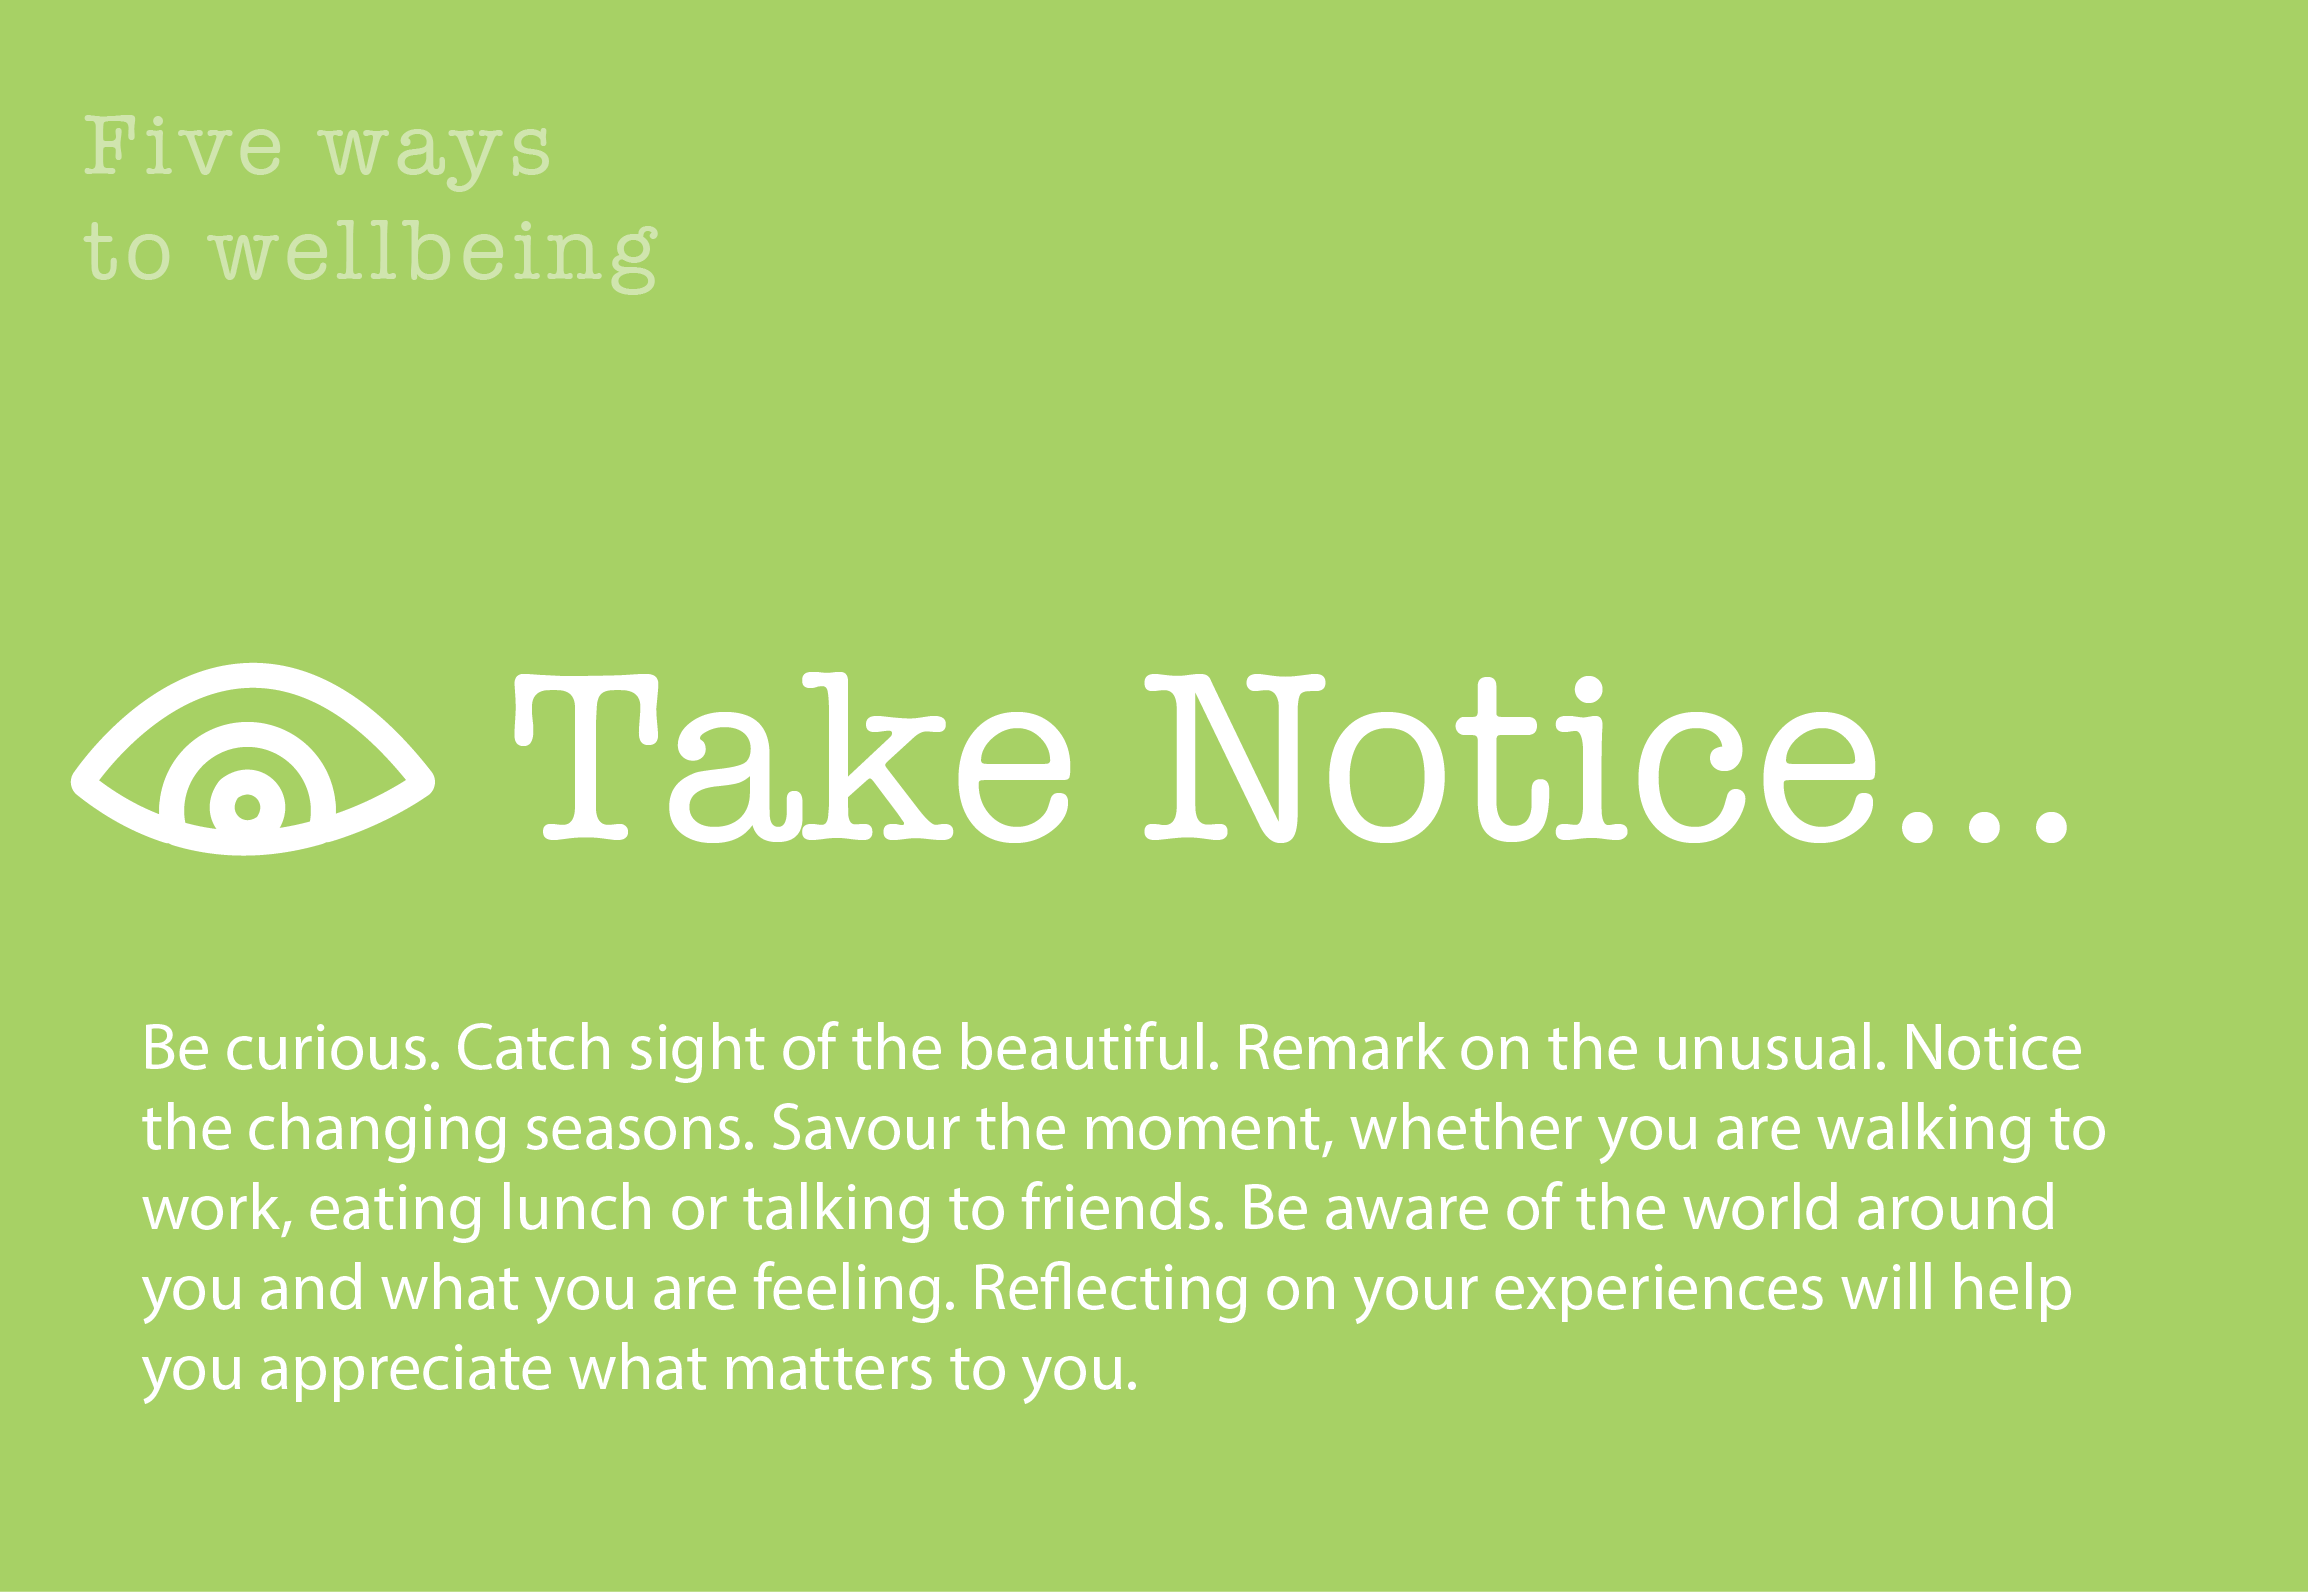 5 Ways to Wellbeing: Take Notice. Be curious. Catch sight of the beautiful. Remark on the unusual. Notice the changing seasons. Savour the moment, whether you are walking to work, eating lunch or talking to friends. Be aware of the world around you and what you are feeling. Reflecting on your experiences will help you appreciate what matters to you.